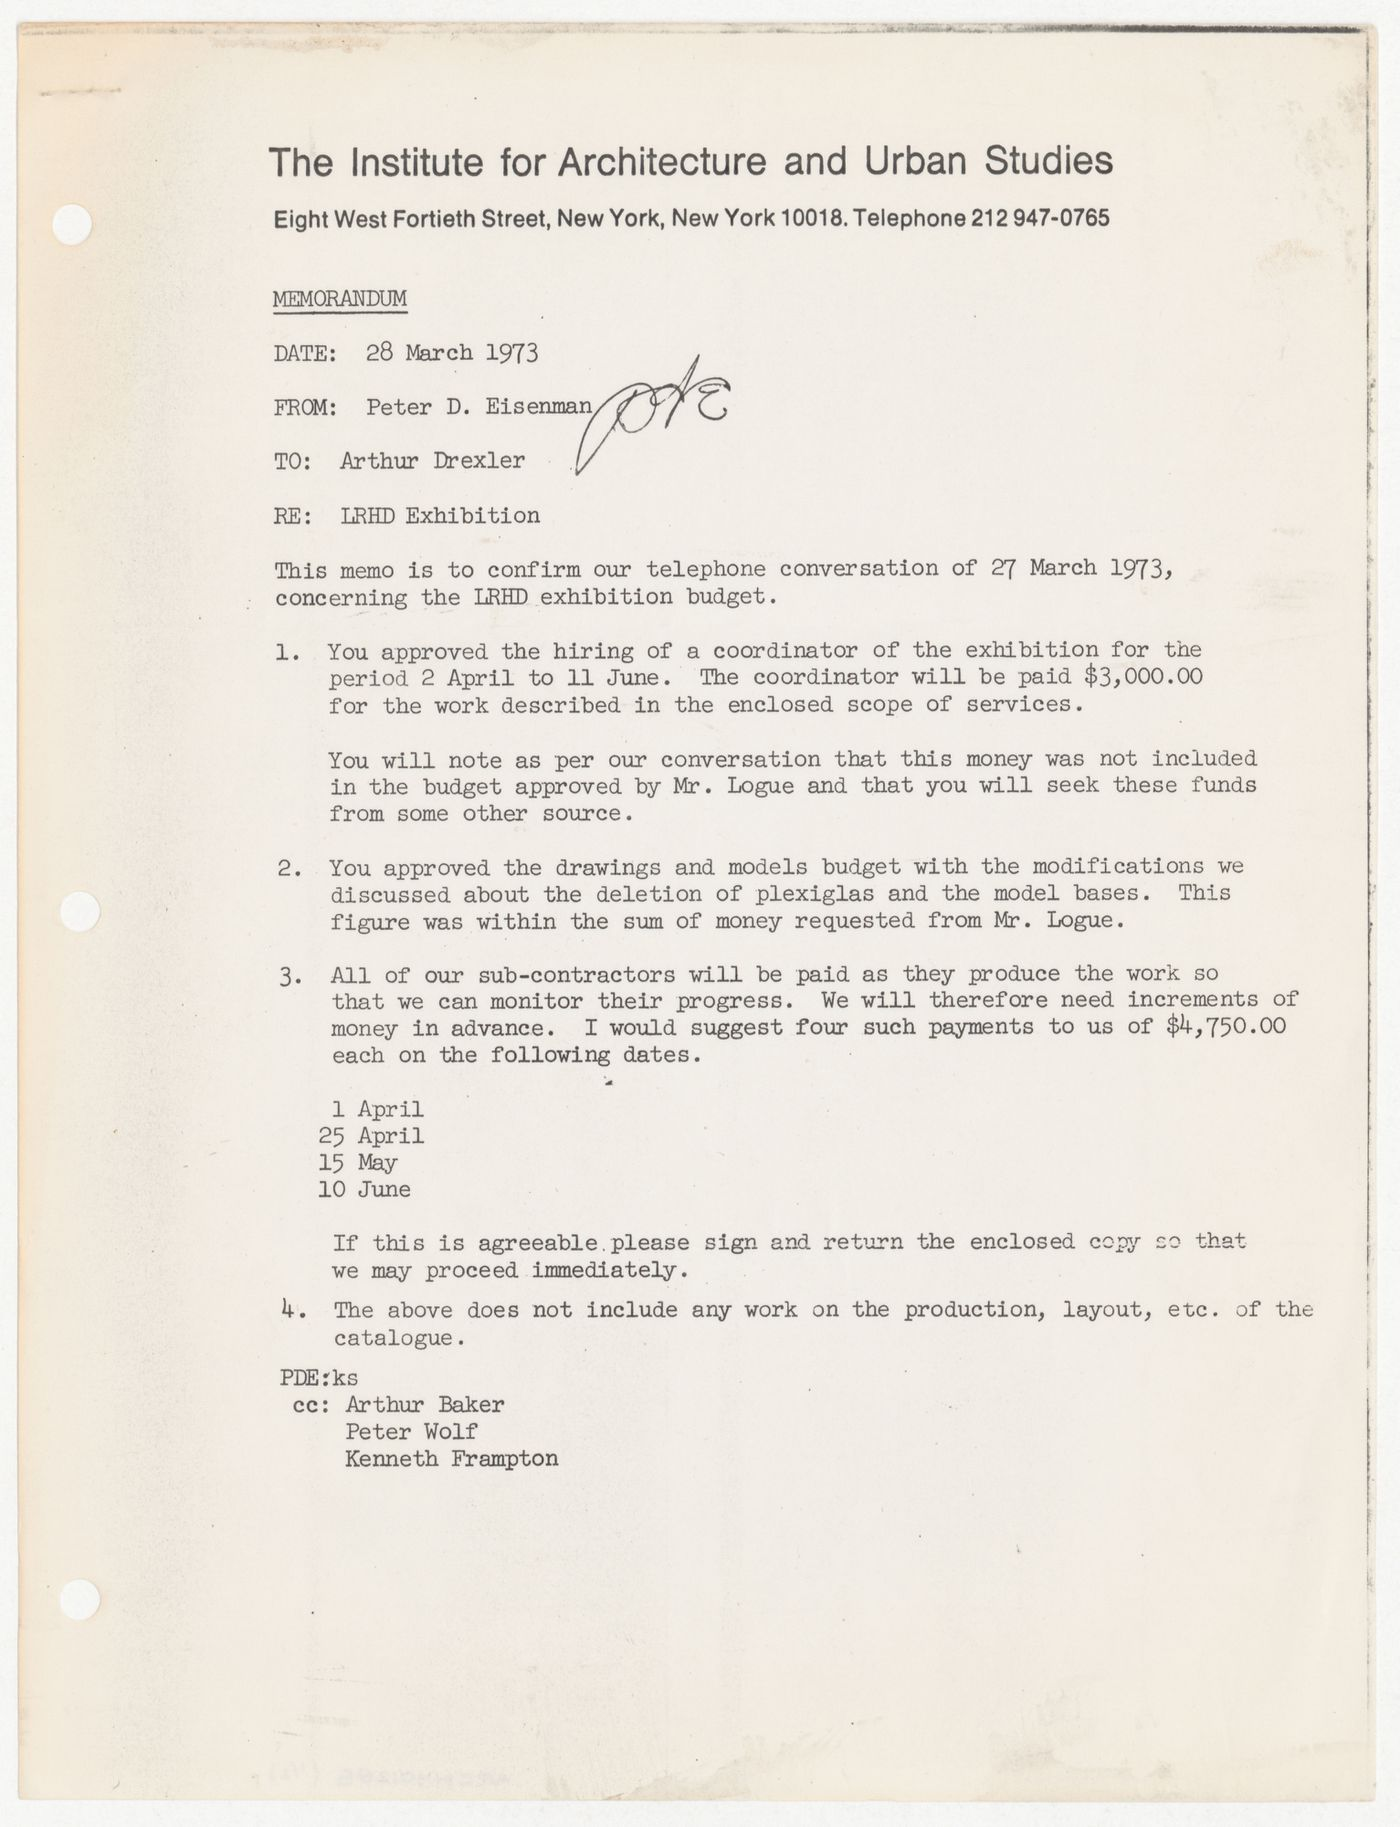 Memorandum from Peter D. Eisenman to Arthur Drexler about Low-Rise High-Density (LRHD) exihibition